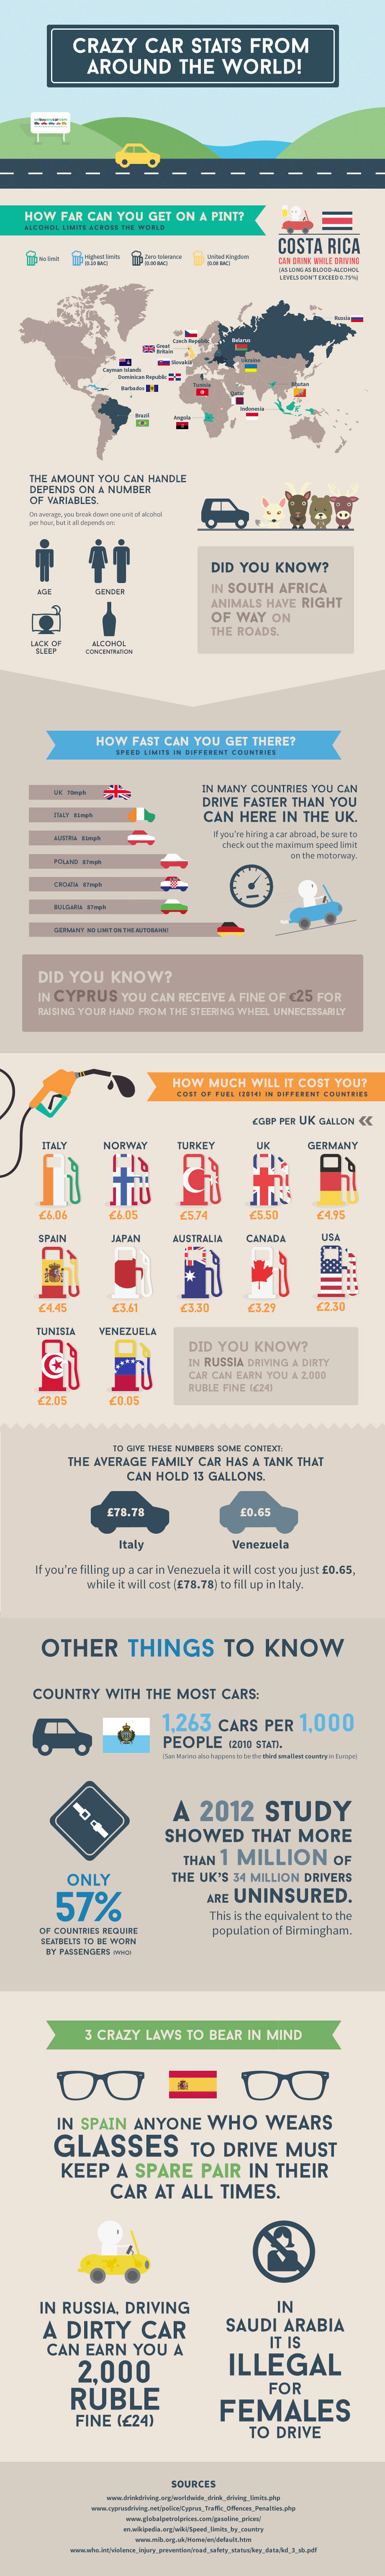 Infographic : Crazy Car Stats From Around the World